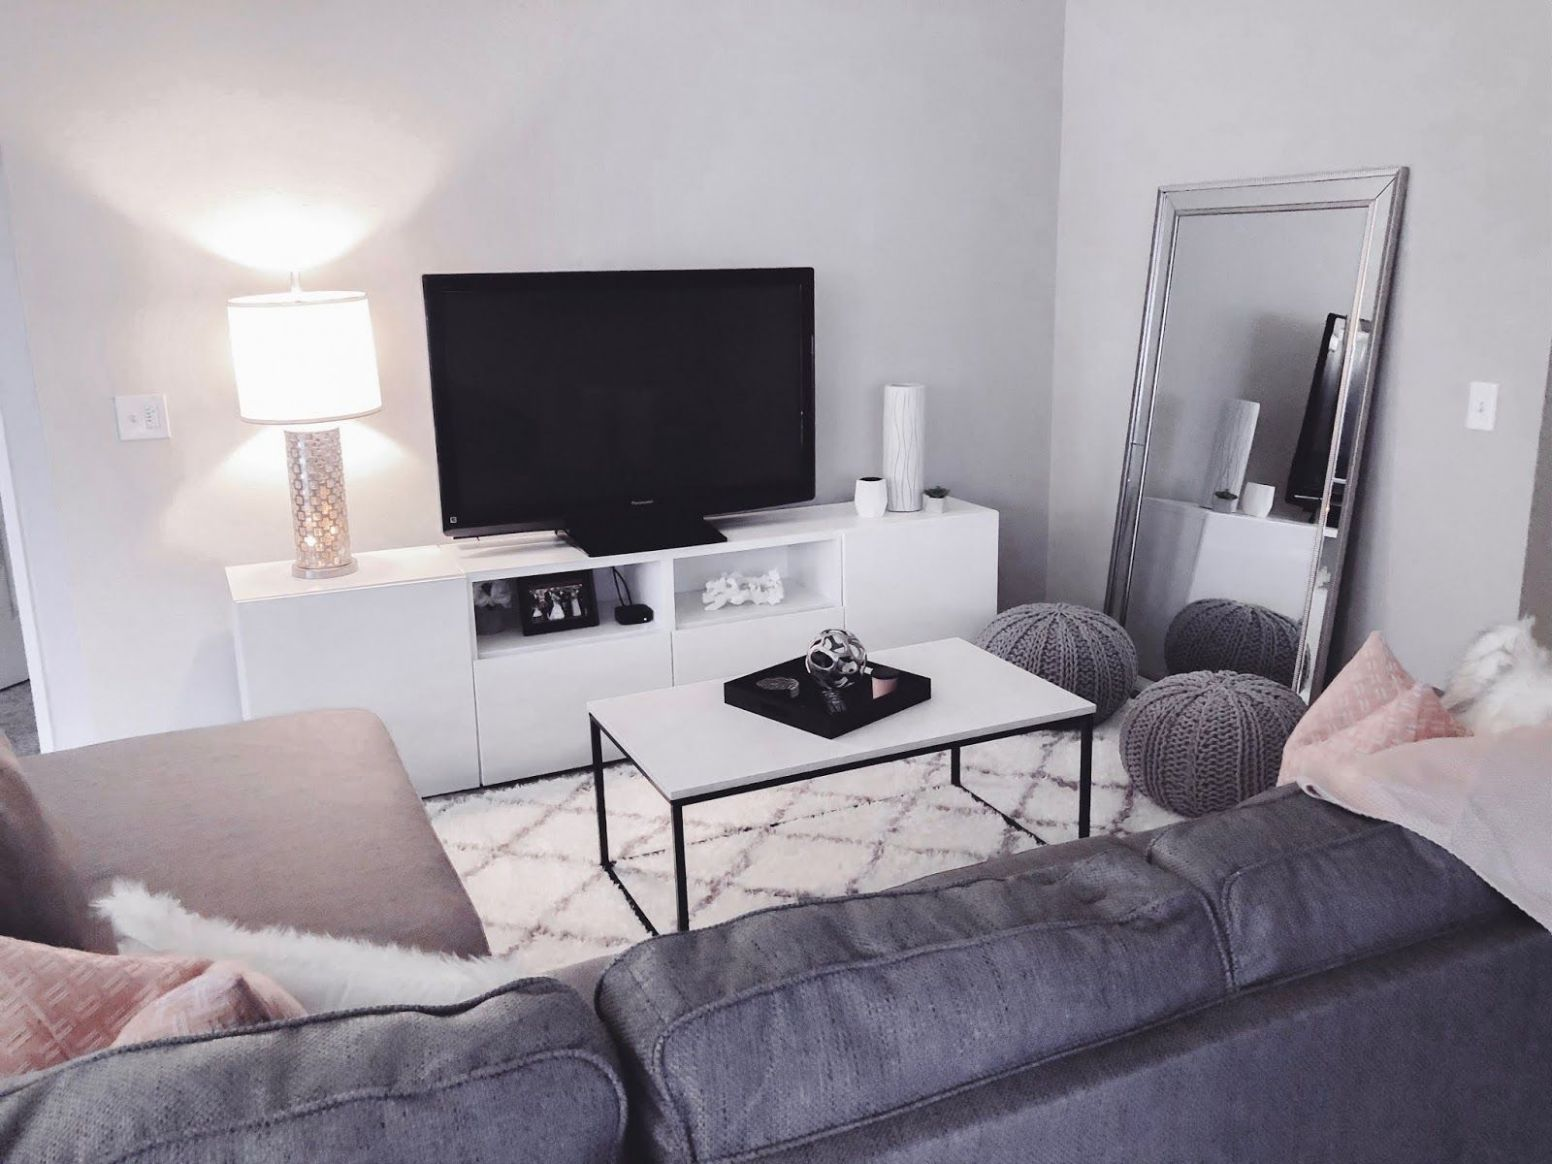 Affordable Apartment Decor in 8 | Living room grey, Affordable ..